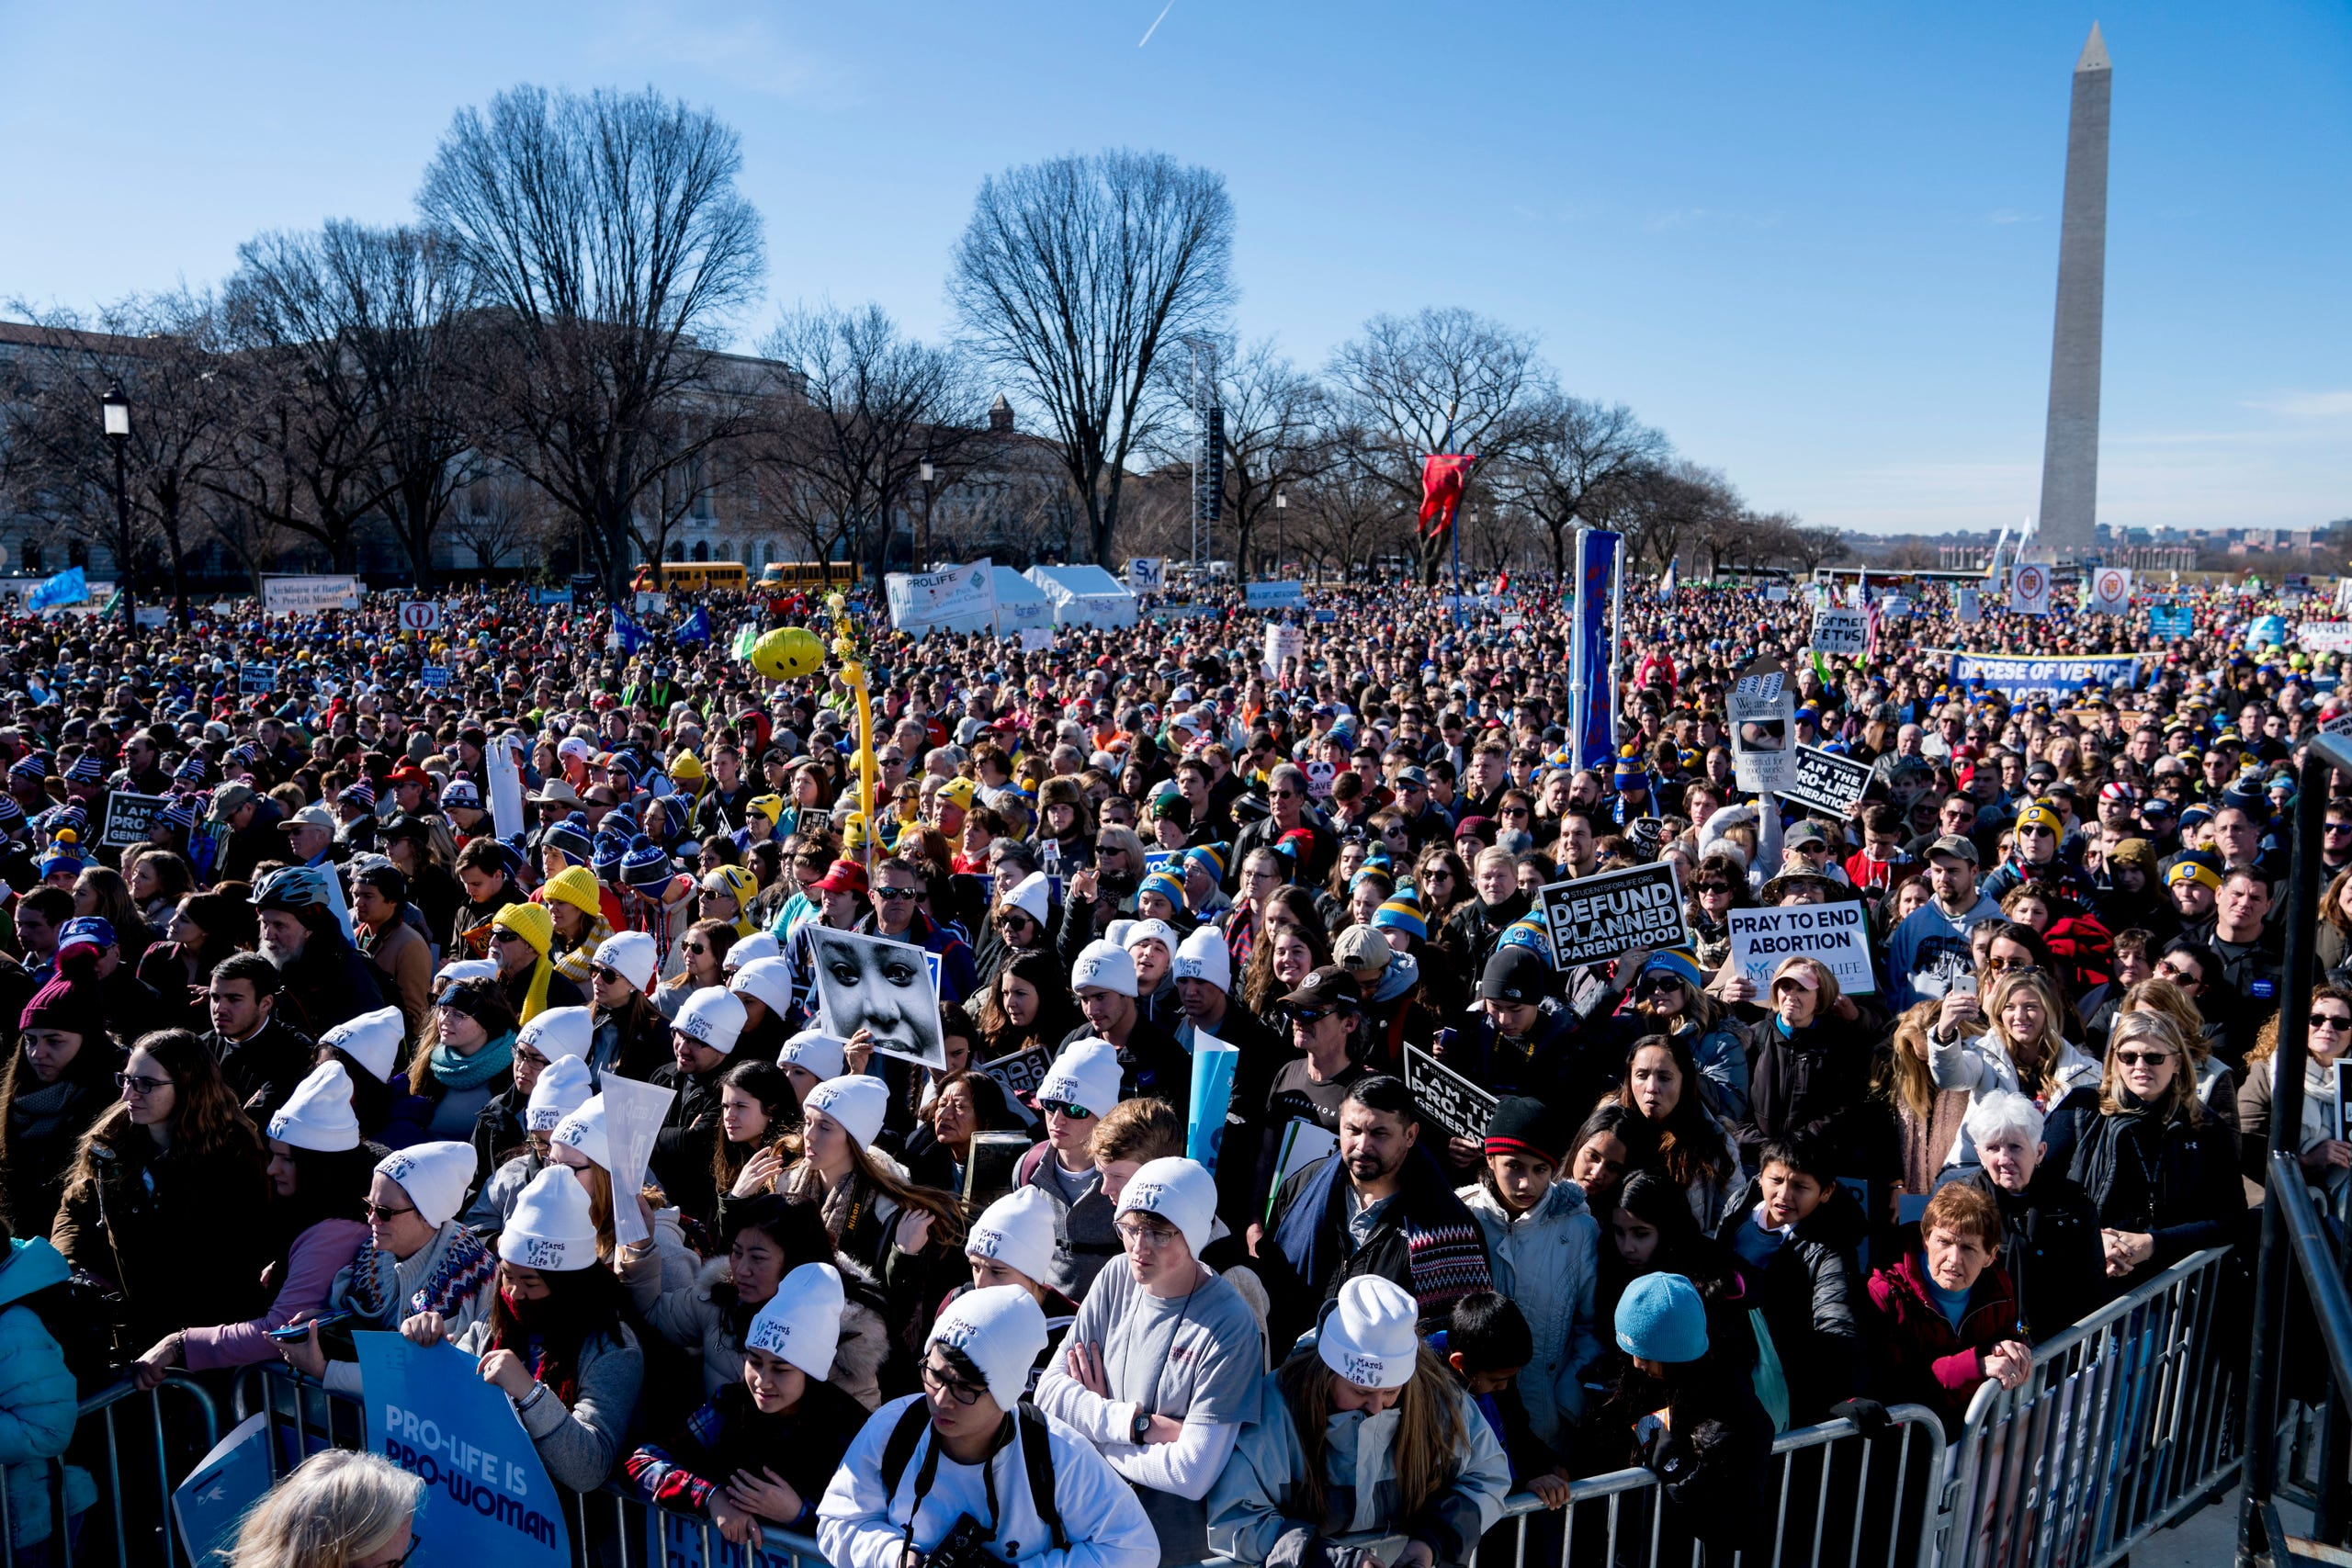 March for Life 2018: President Trump address rally